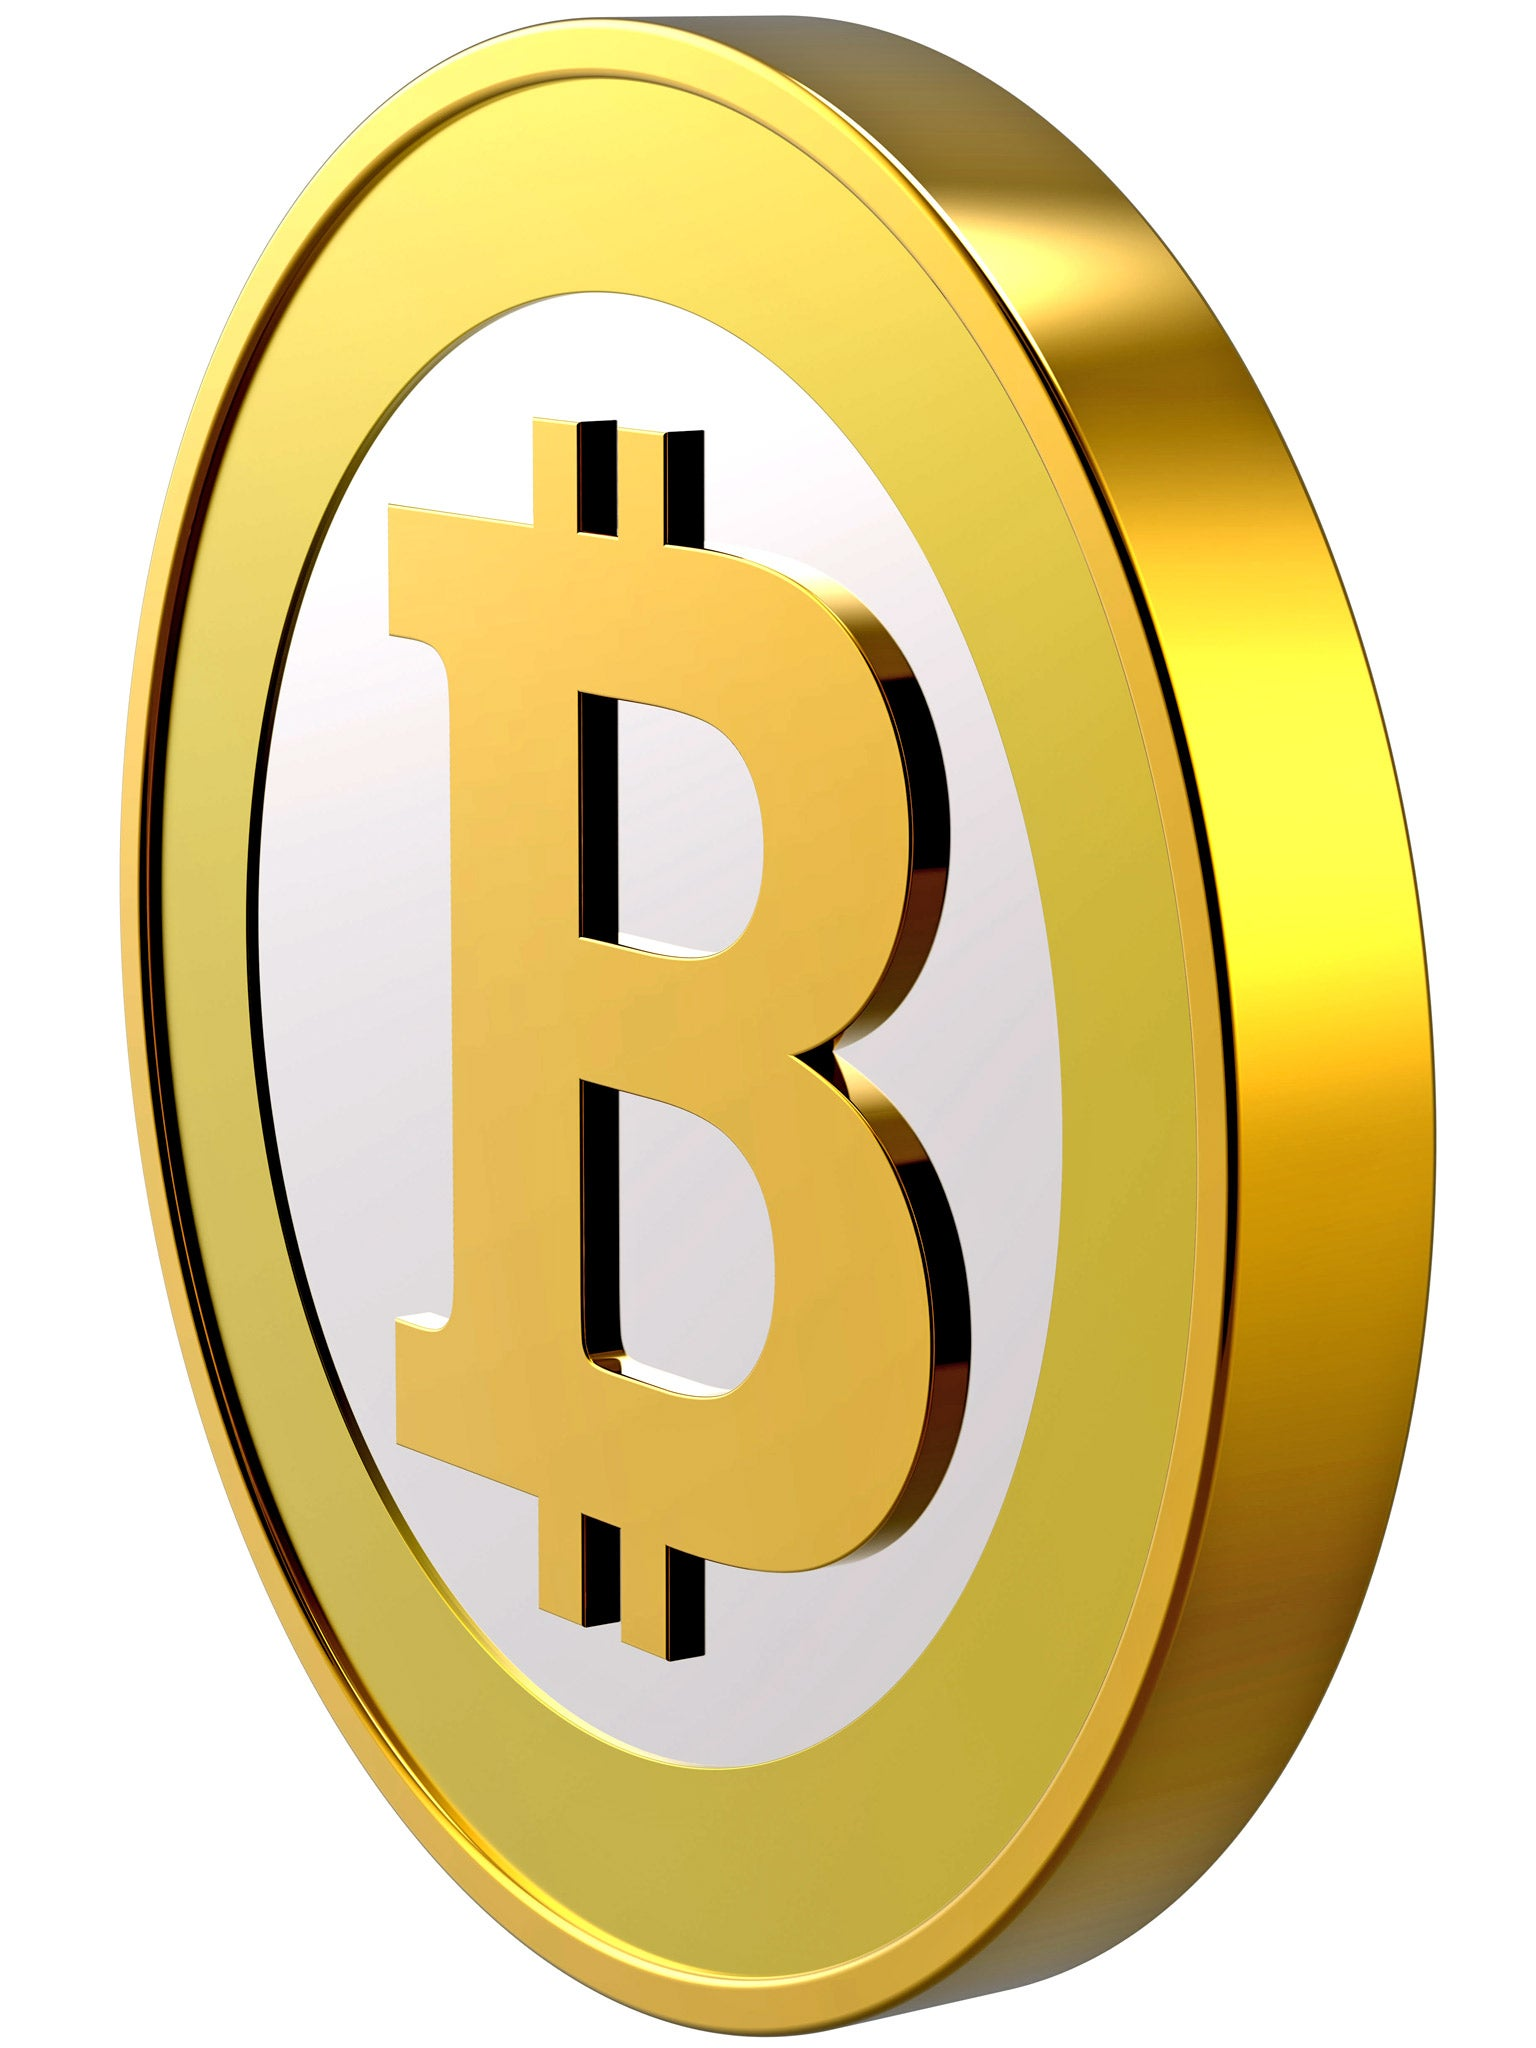 Bitcoin value is on the verge of another 'price explosion